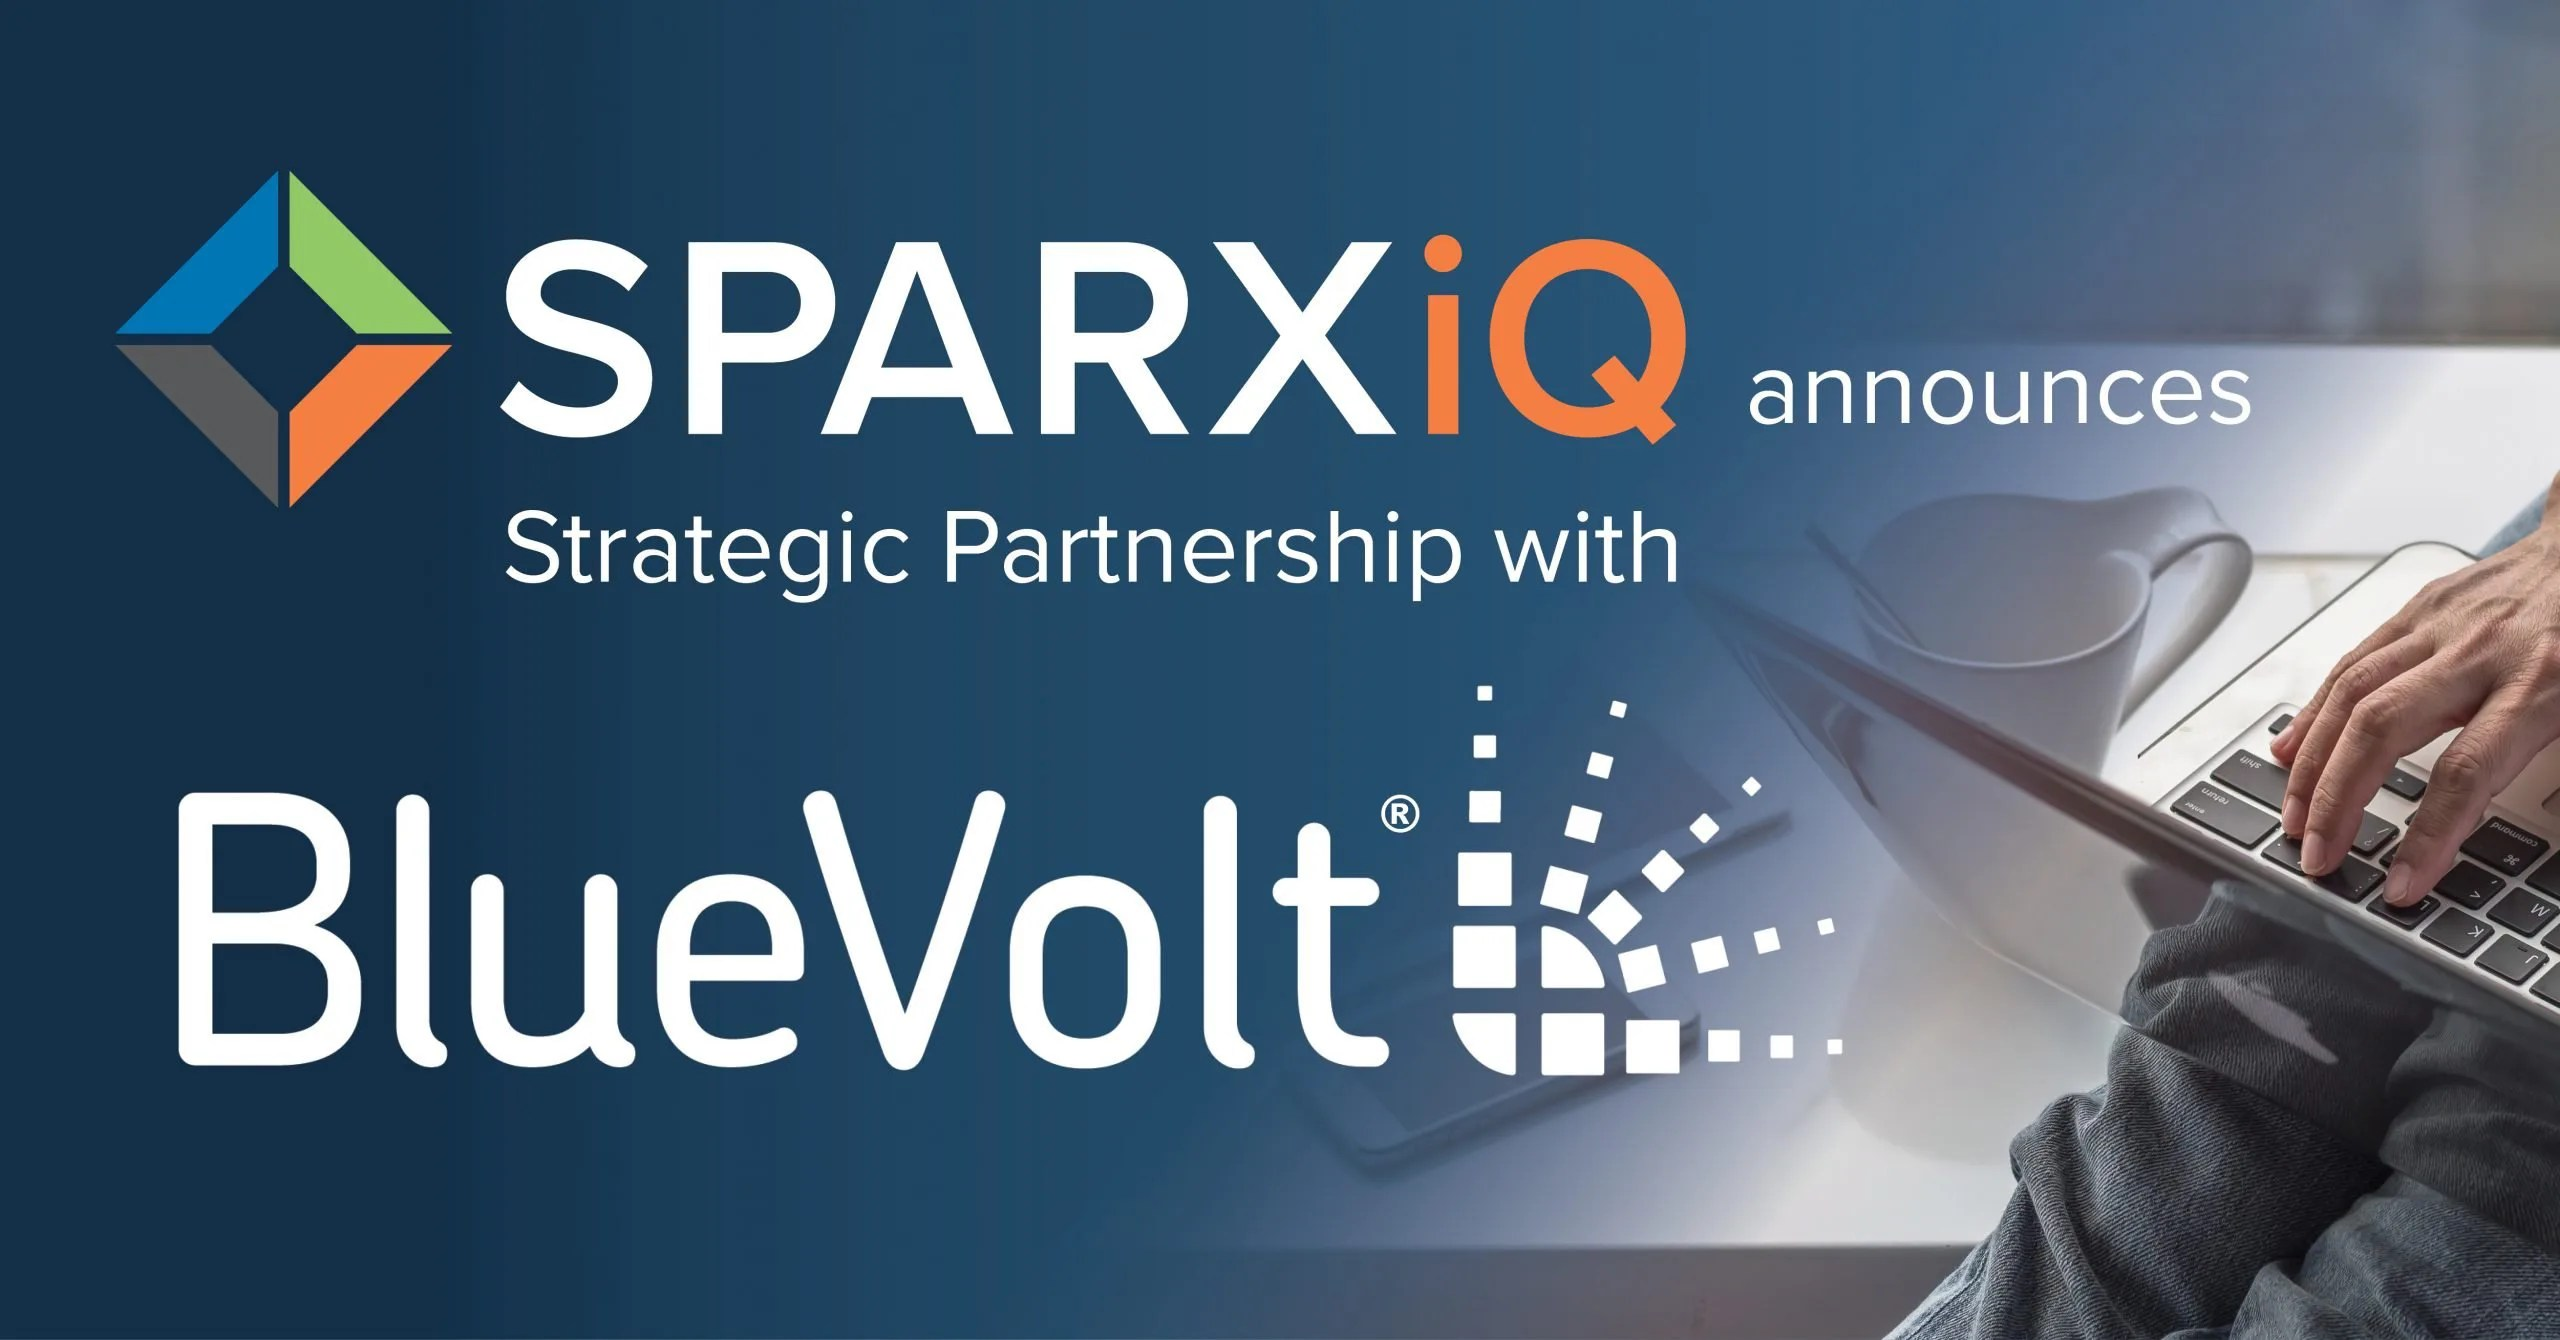 SPARXiQ BlueVolt Partnership Announcement